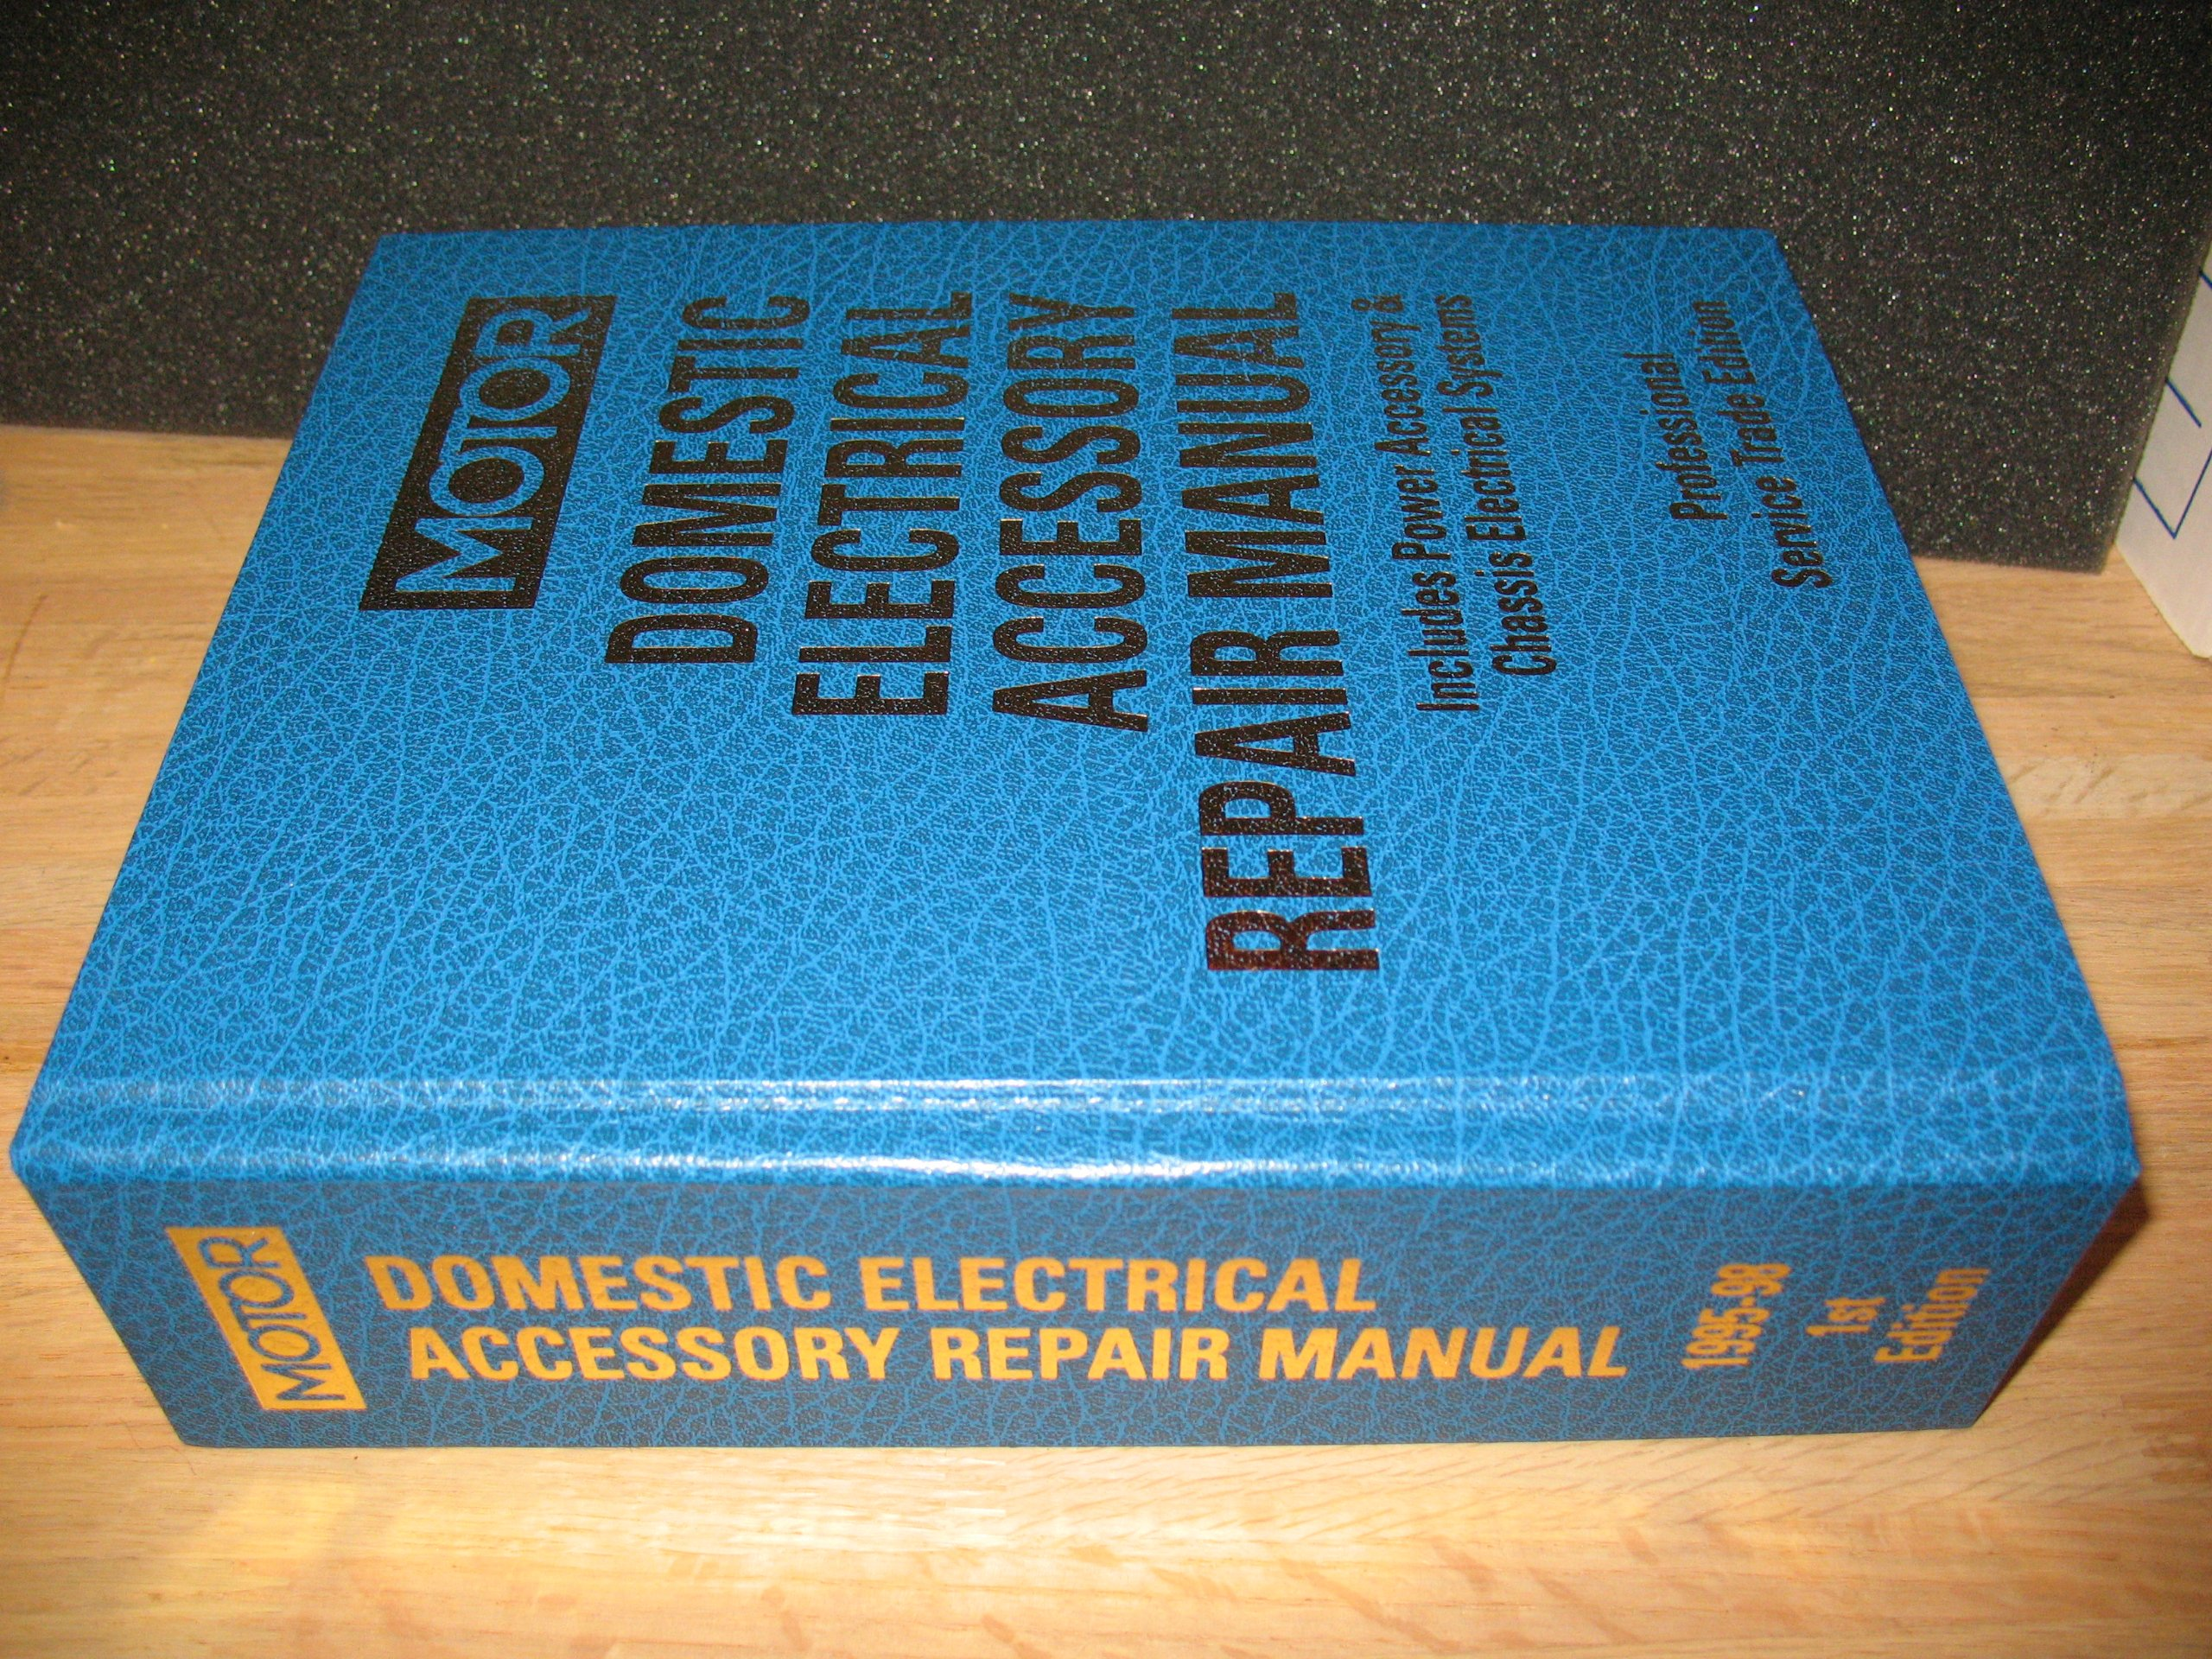 Domestic Electrical Accessory Manual